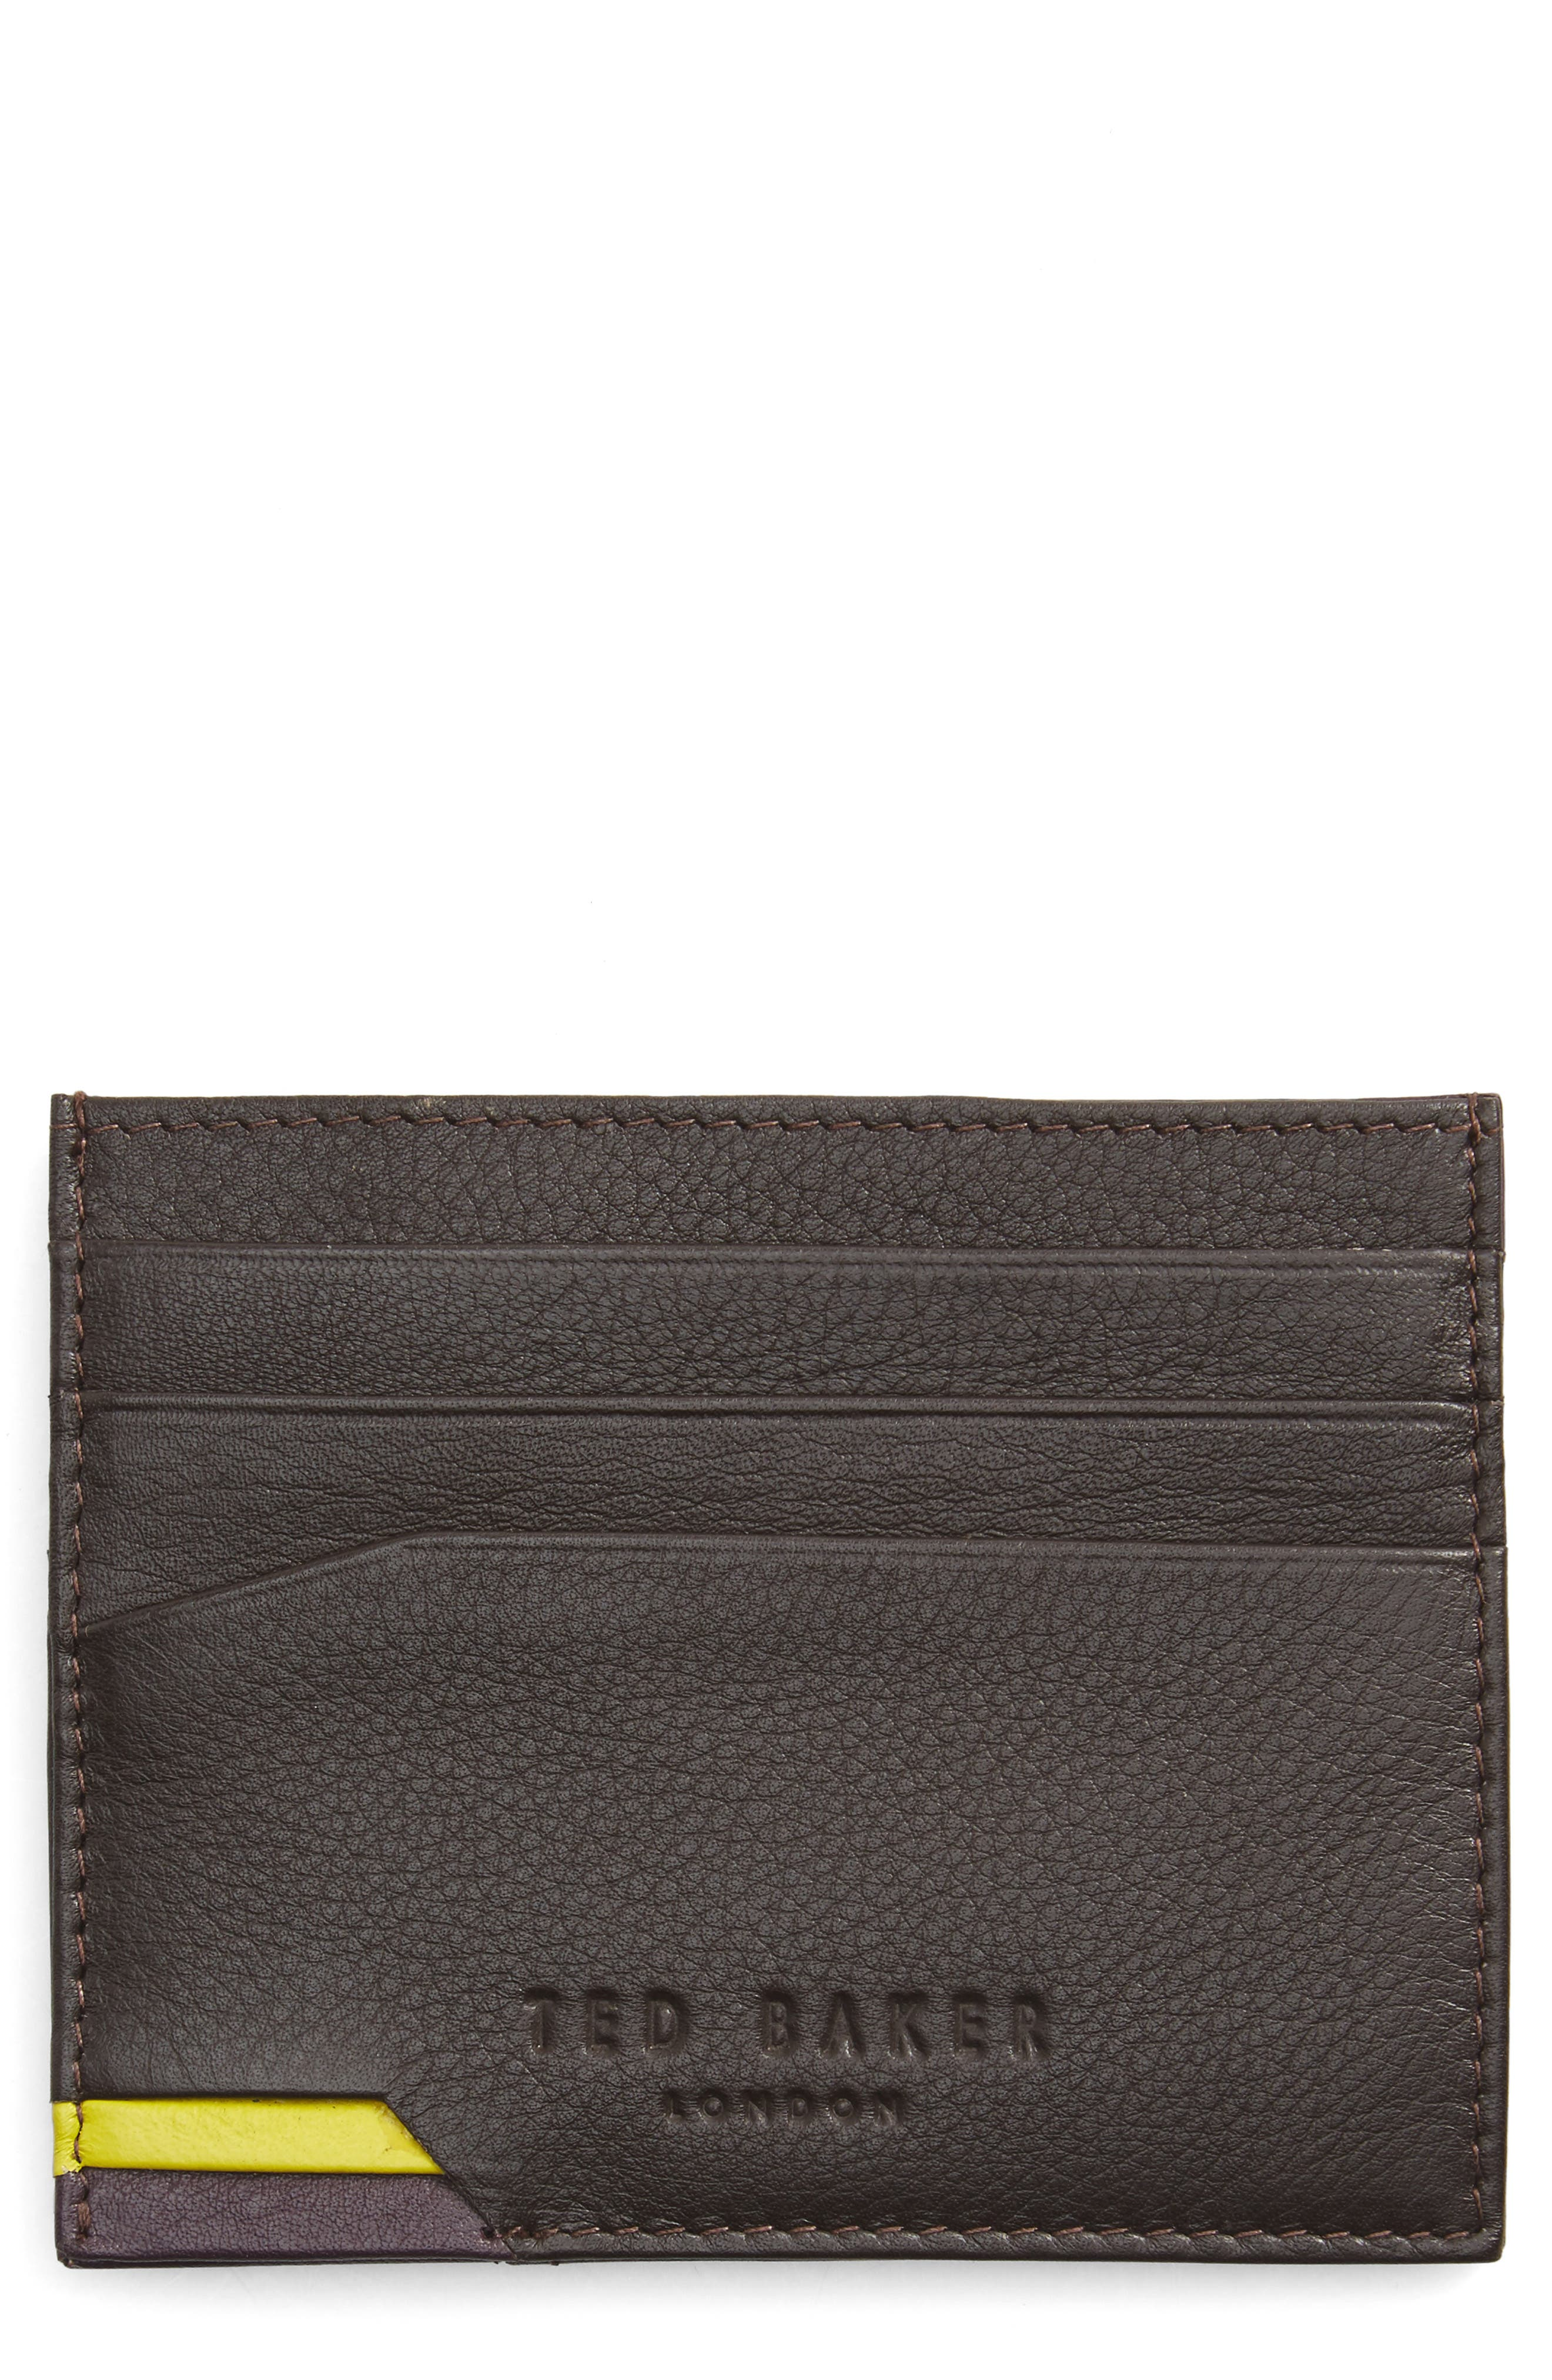 Corcard Card Case,                         Main,                         color, 211